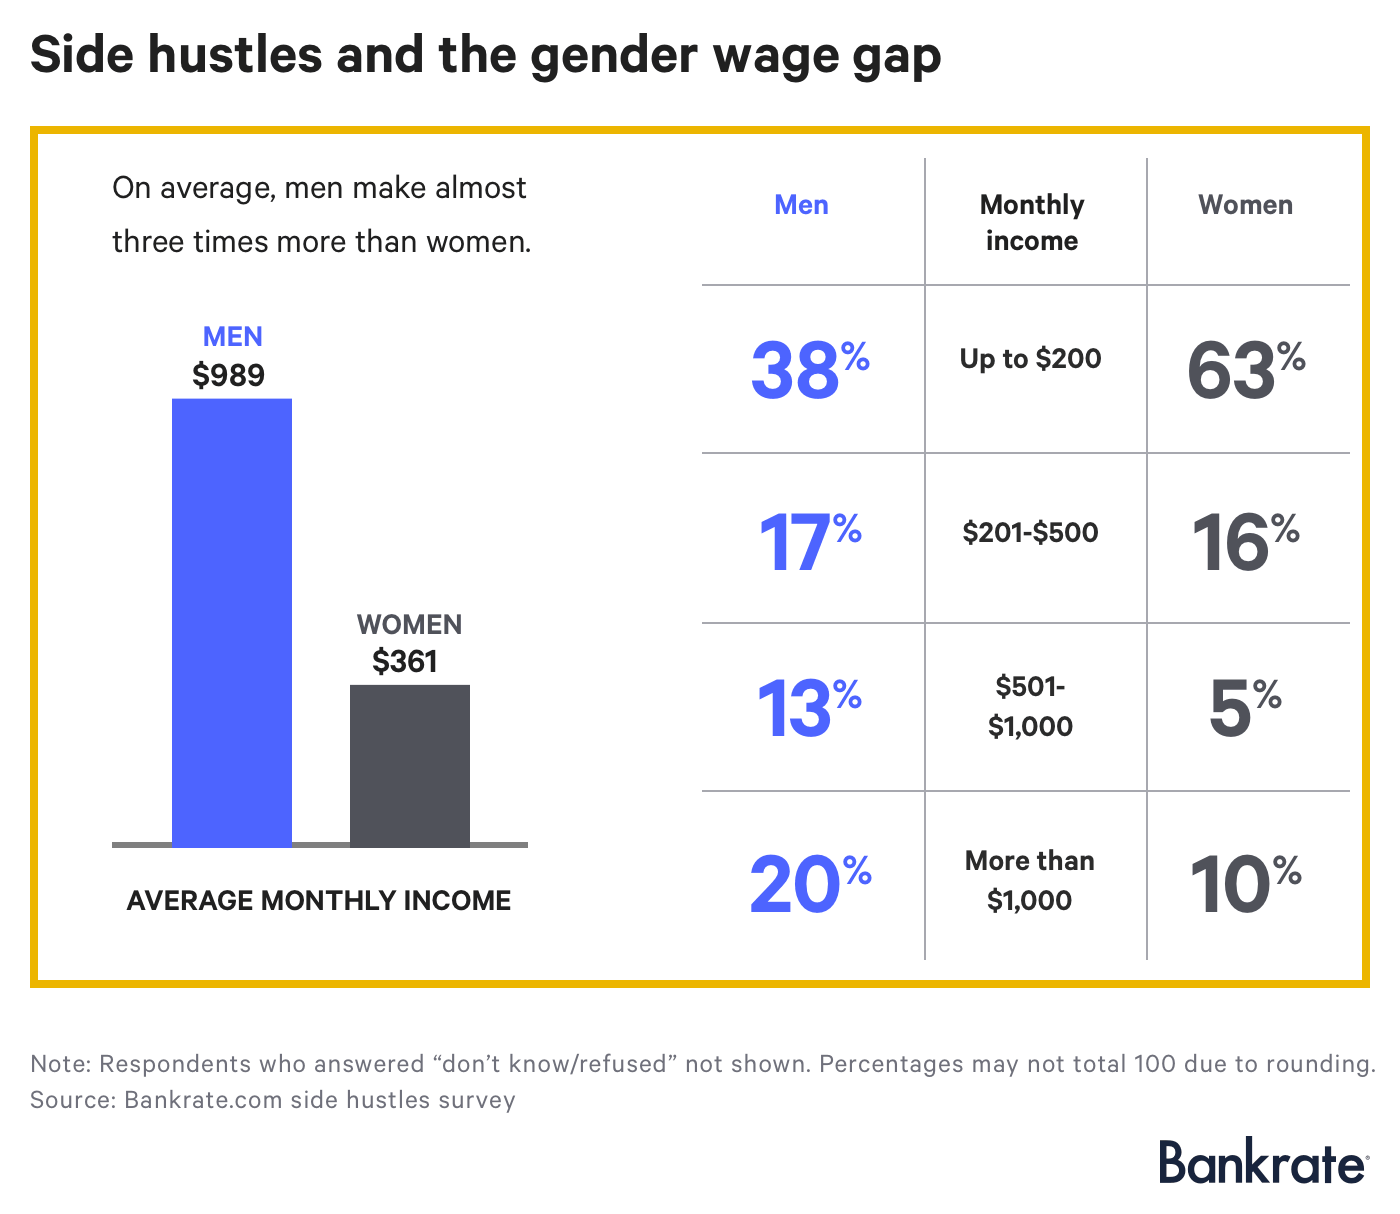 Side hustles and the gender wage gap